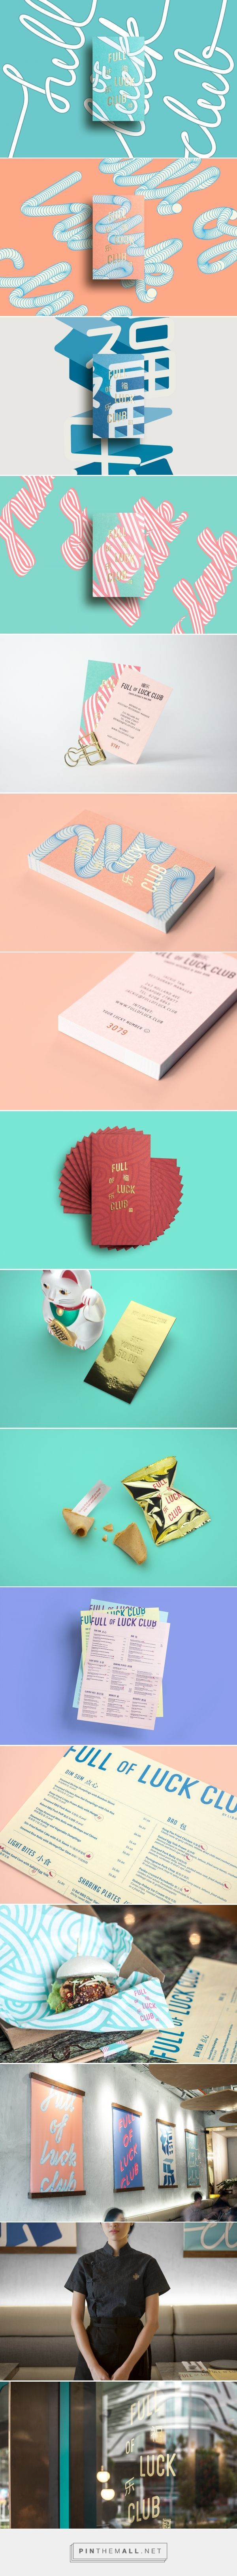 Branding | Graphic Design | Full of Luck Club by Bravo on Behance